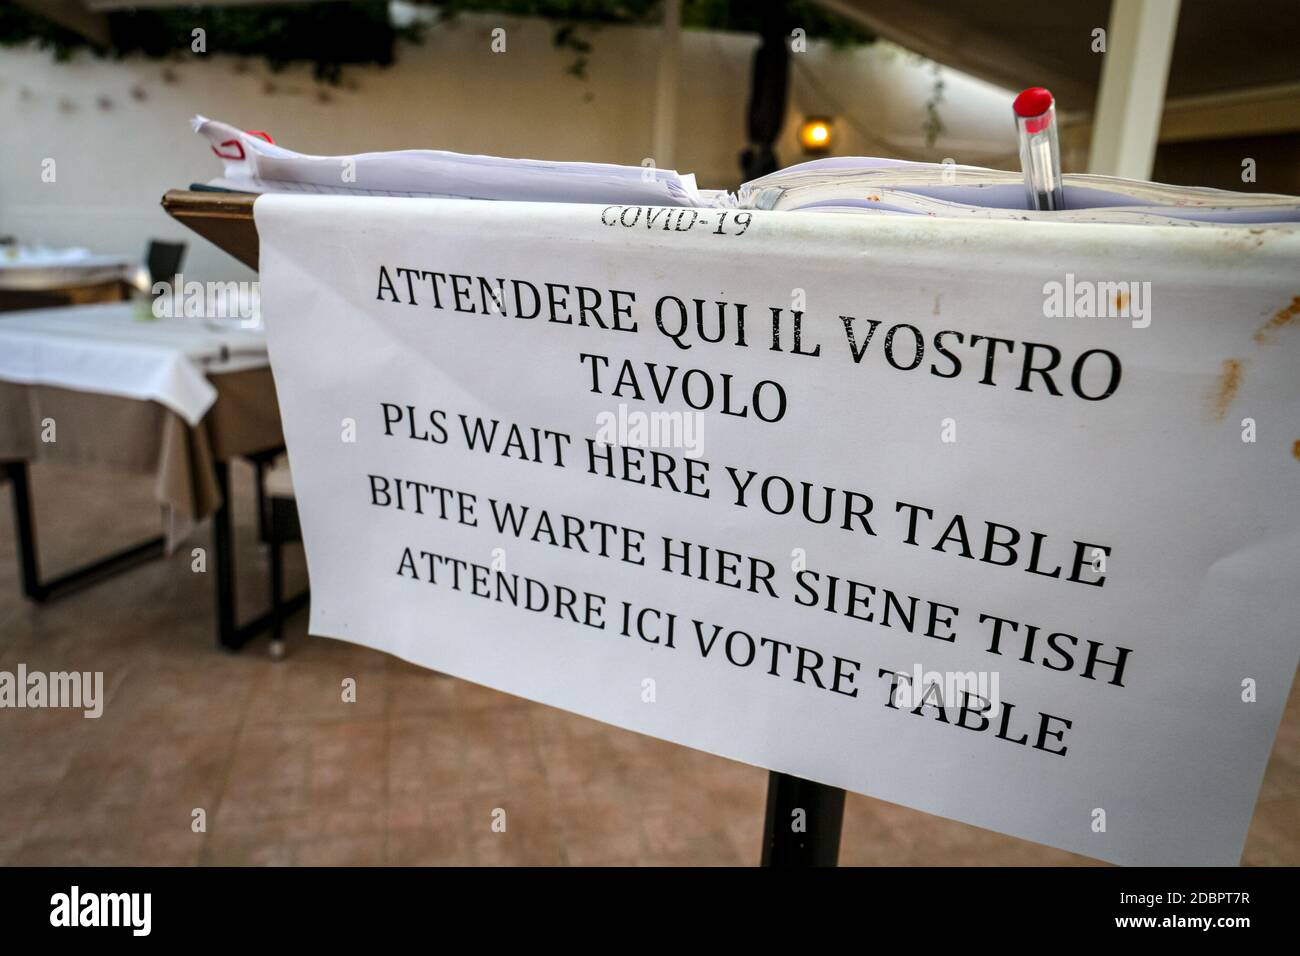 Restaurant sign informs guests to wait until seated in different languages, assuring social distancing regulations during the coronavirus pandemic. Stock Photo